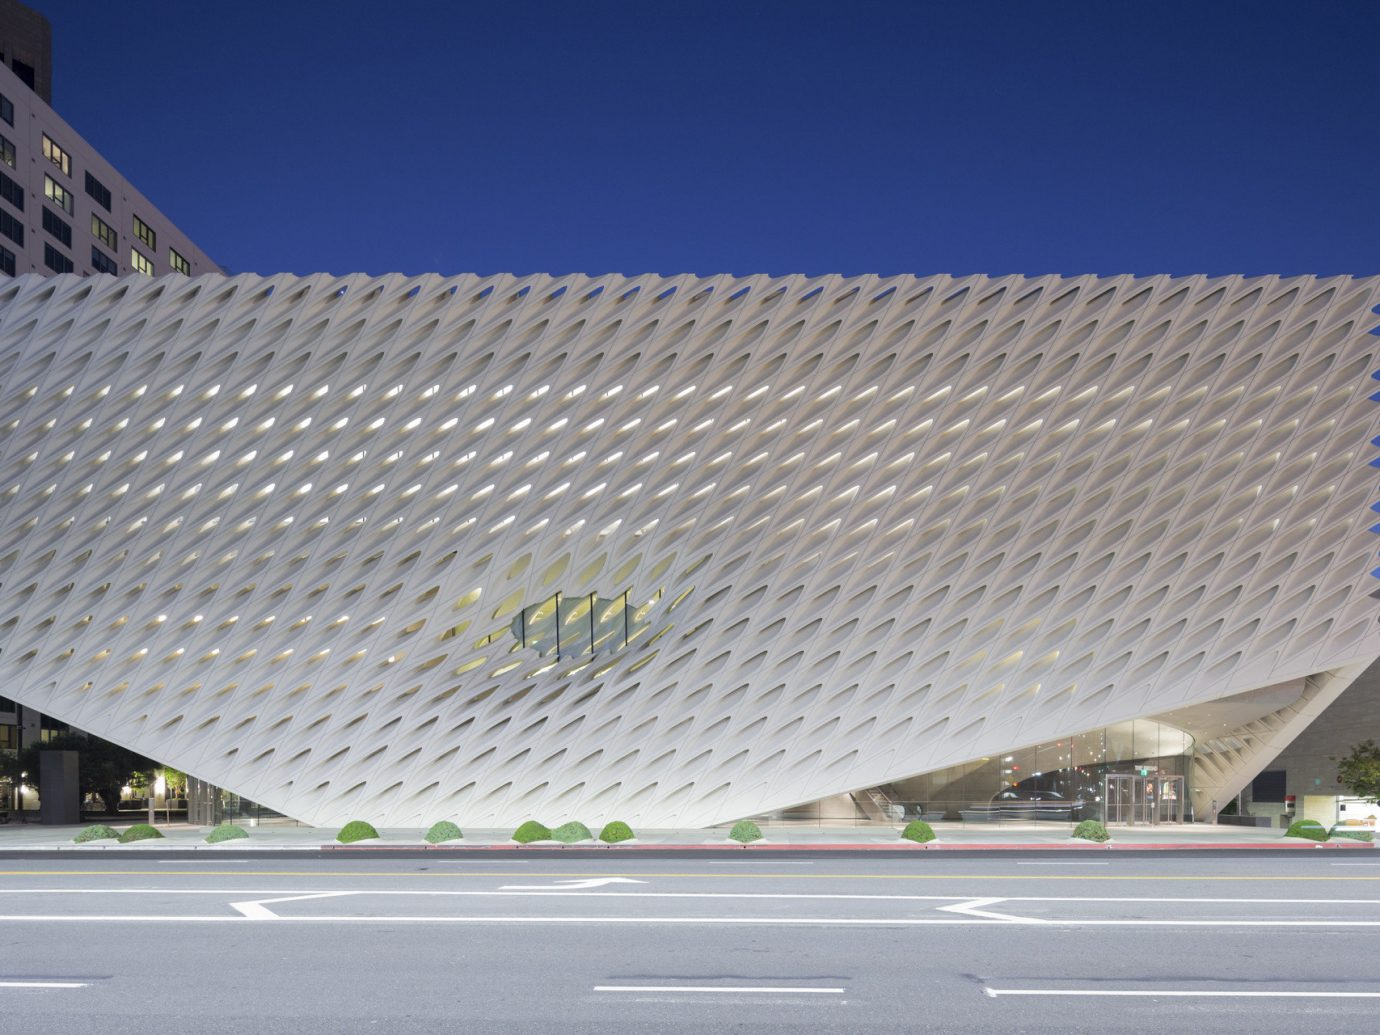 Trip Ideas road building outdoor sky structure sport venue stadium Architecture facade arena daylighting headquarters convention center highway